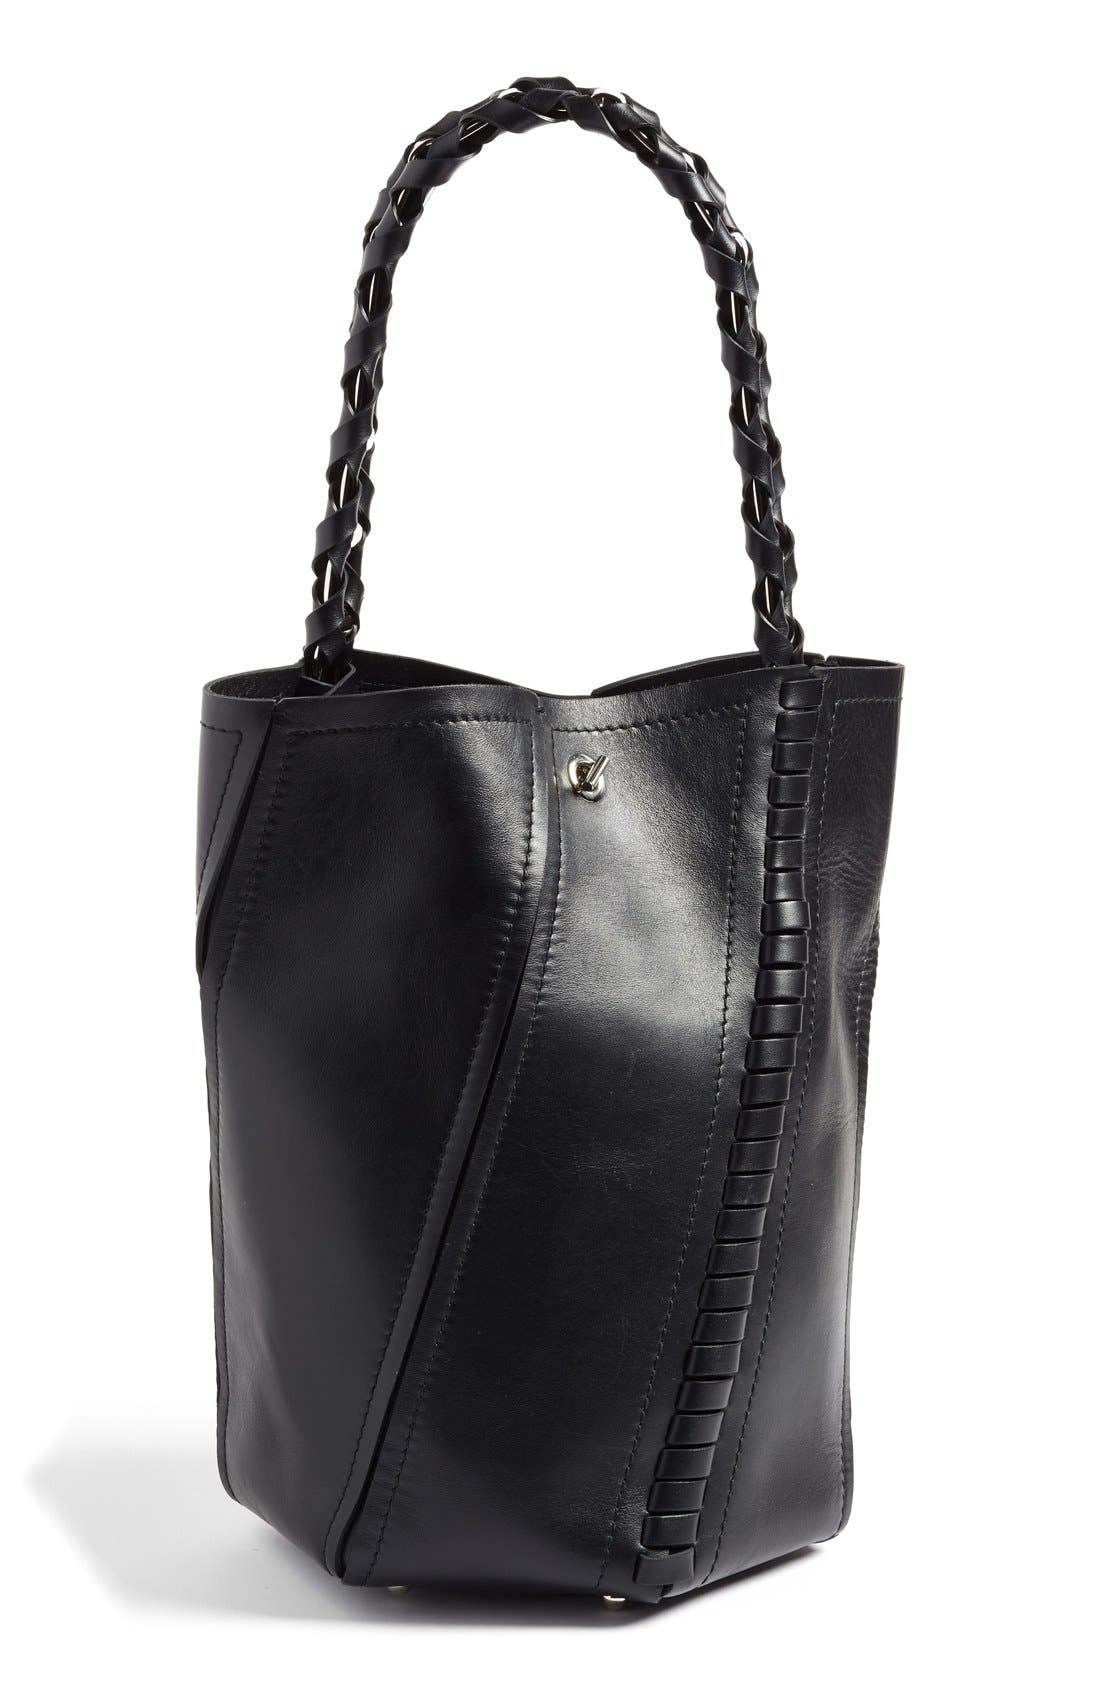 Alternate Image 1 Selected - Proenza Schouler 'Medium Hex' Whipstitch Leather Bucket Bag